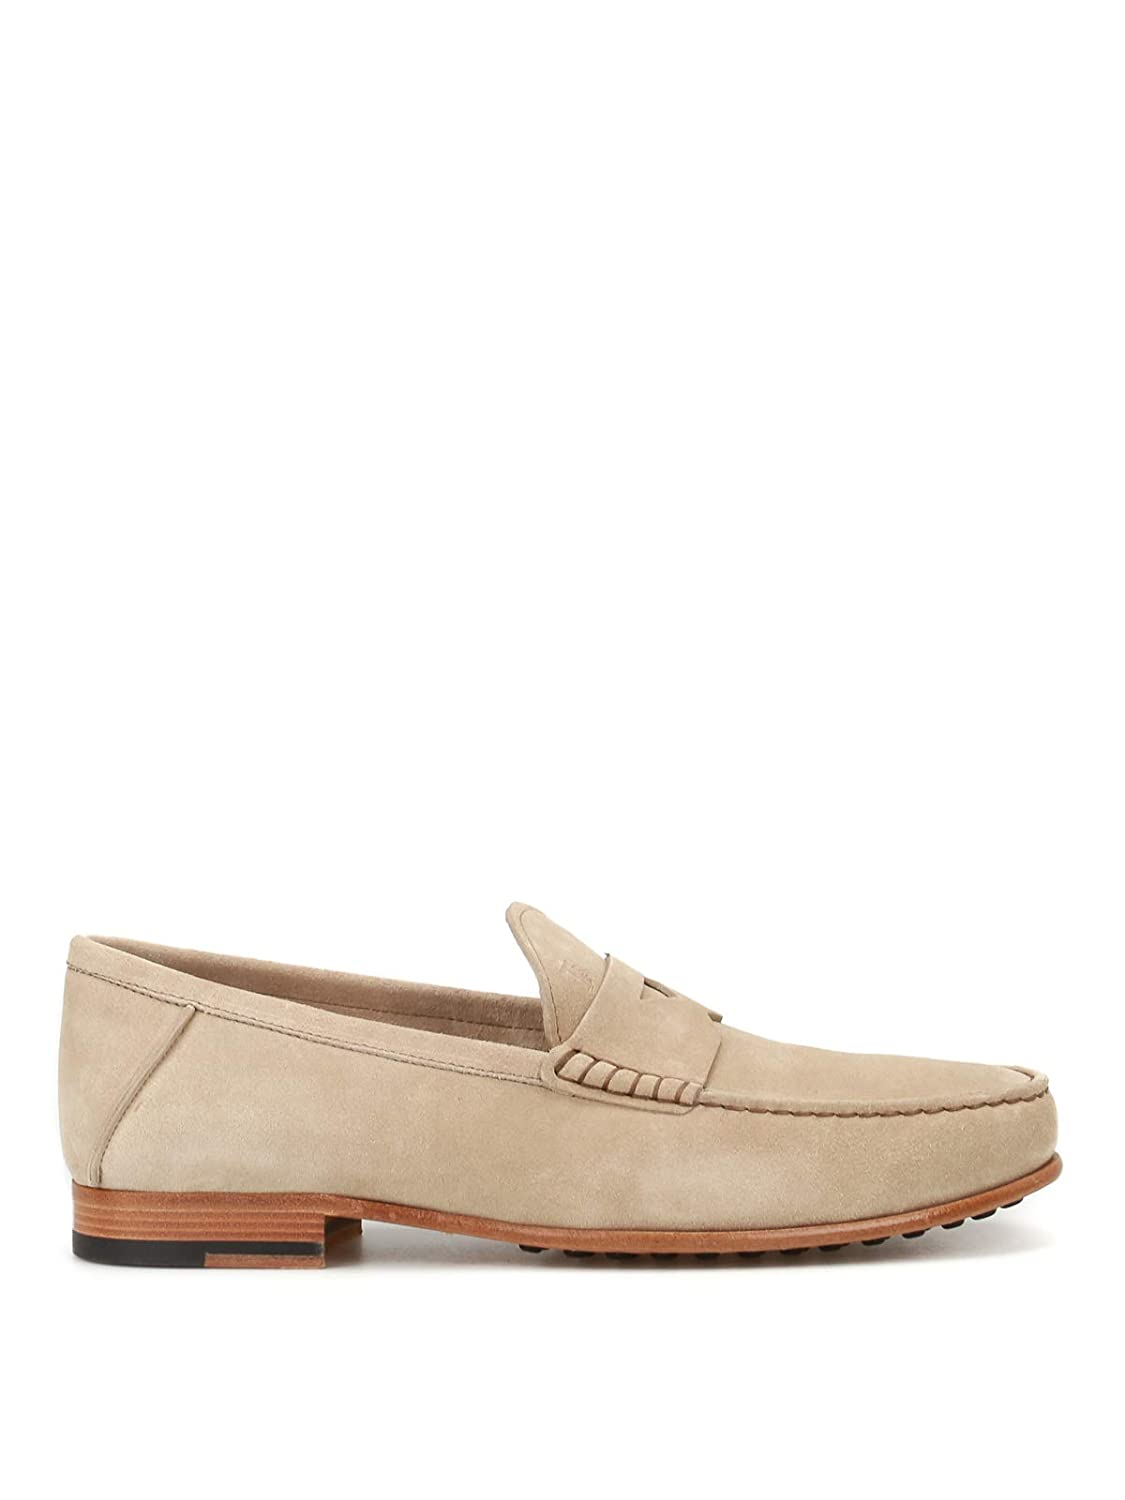 - TOD'S Men Mocasines - Beis Loafers & Slippers